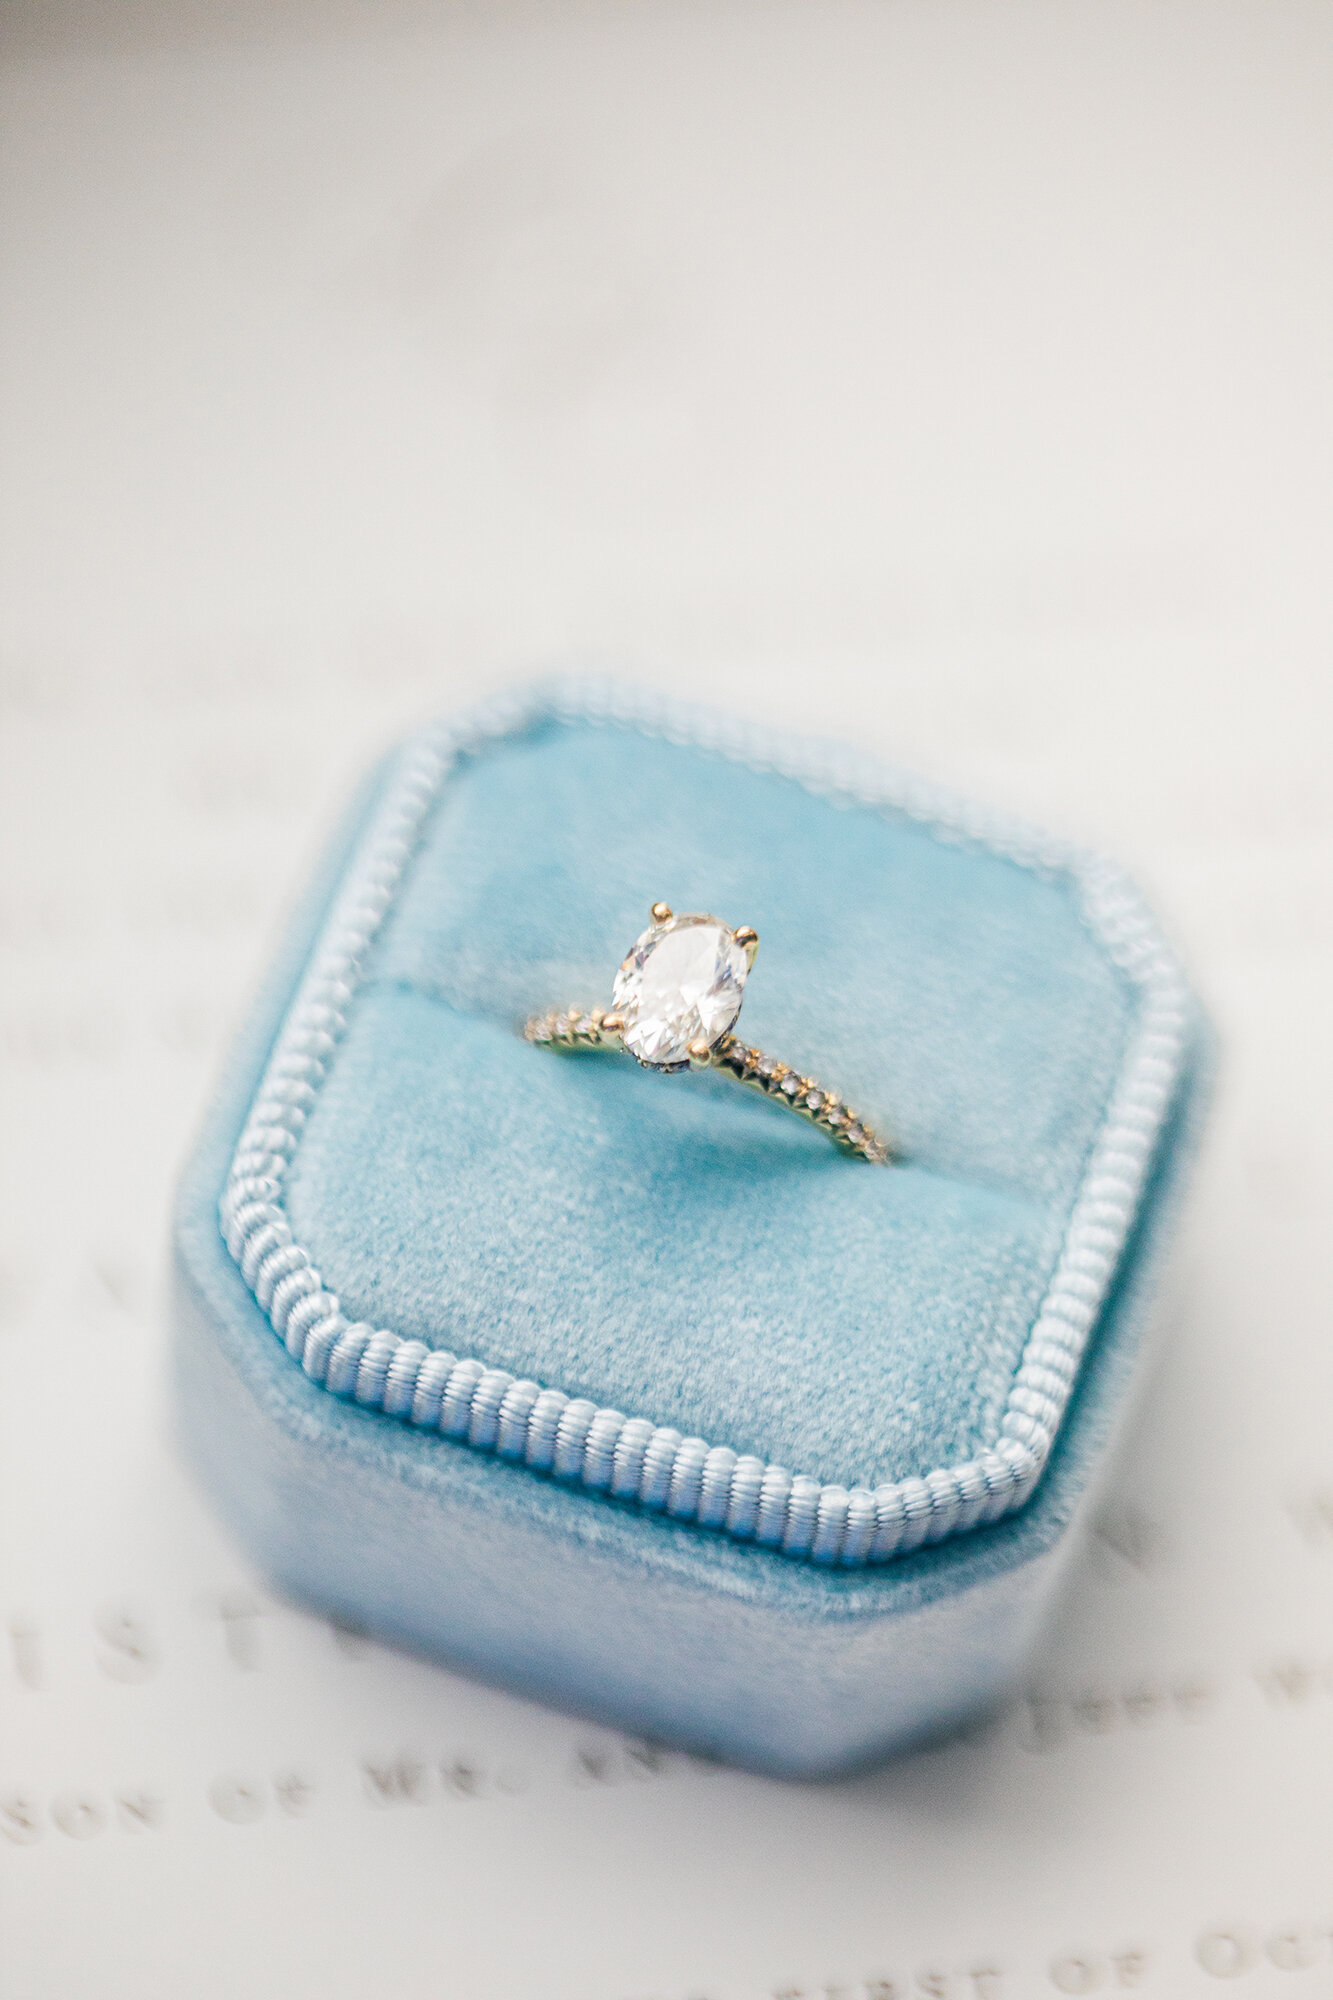 Wedding Ring photo by Tierney Riggs Photography in Raleigh NC